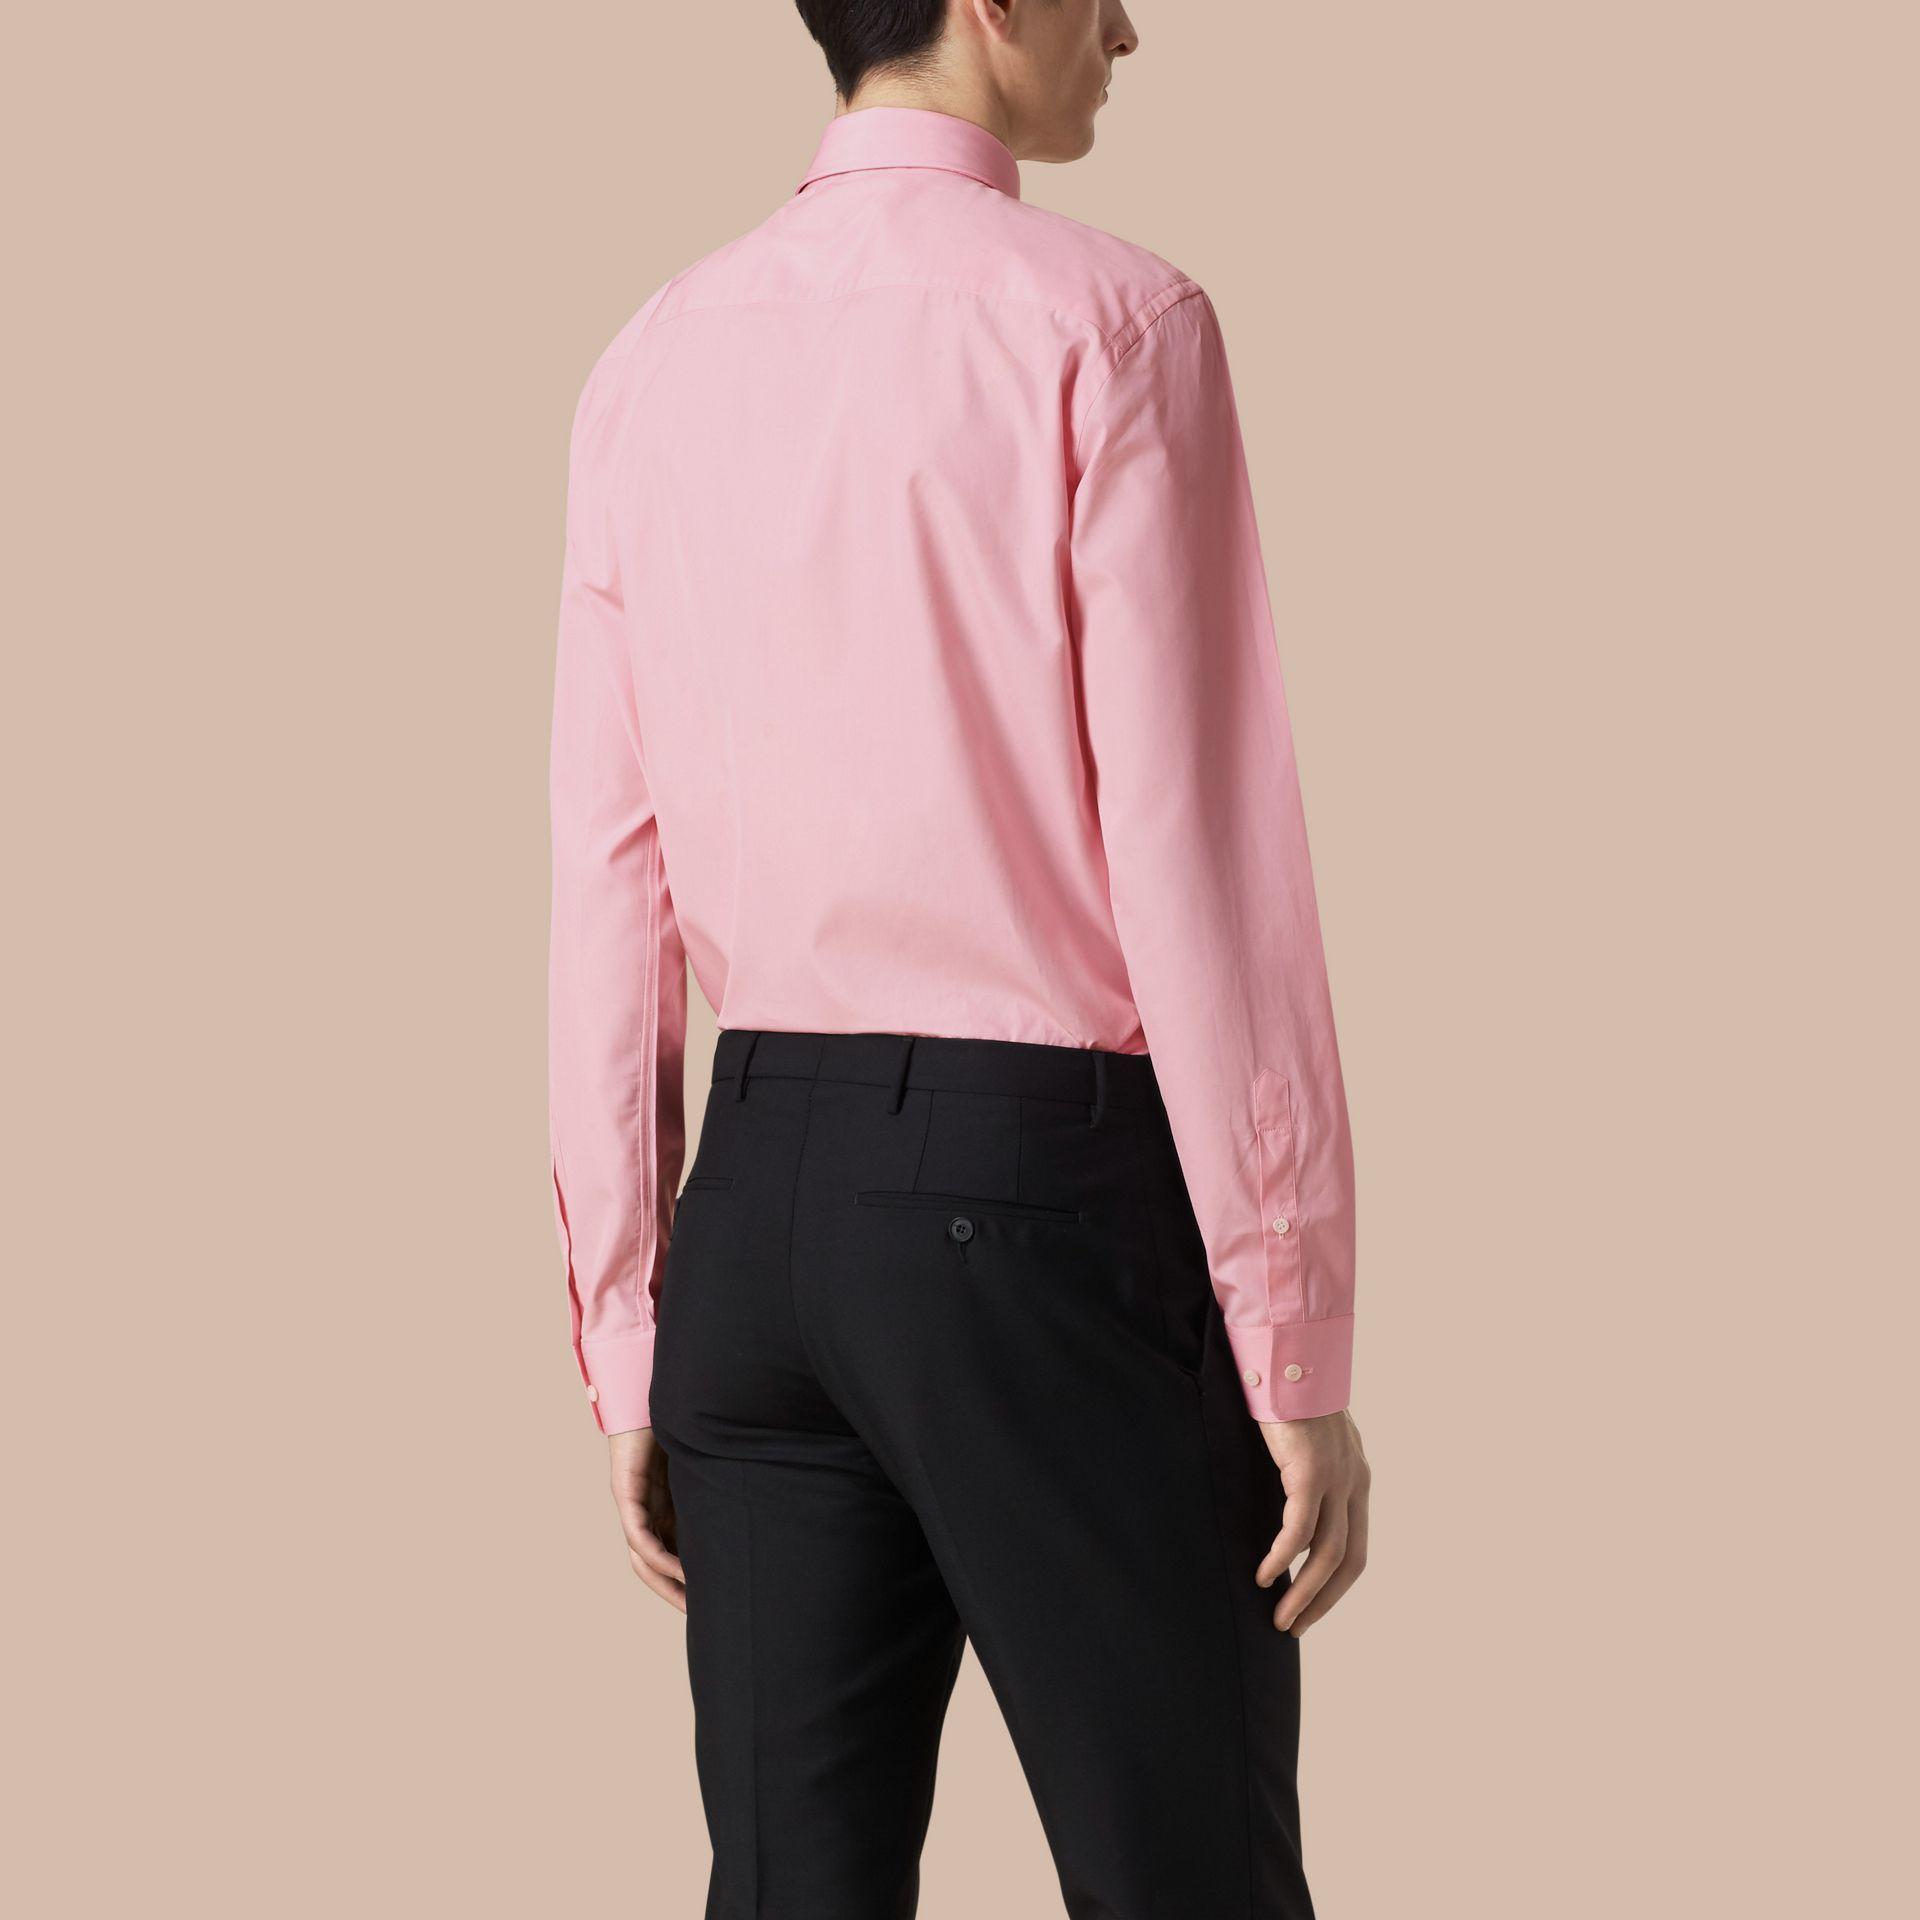 City pink Modern Fit Cotton Poplin Shirt City Pink - gallery image 3